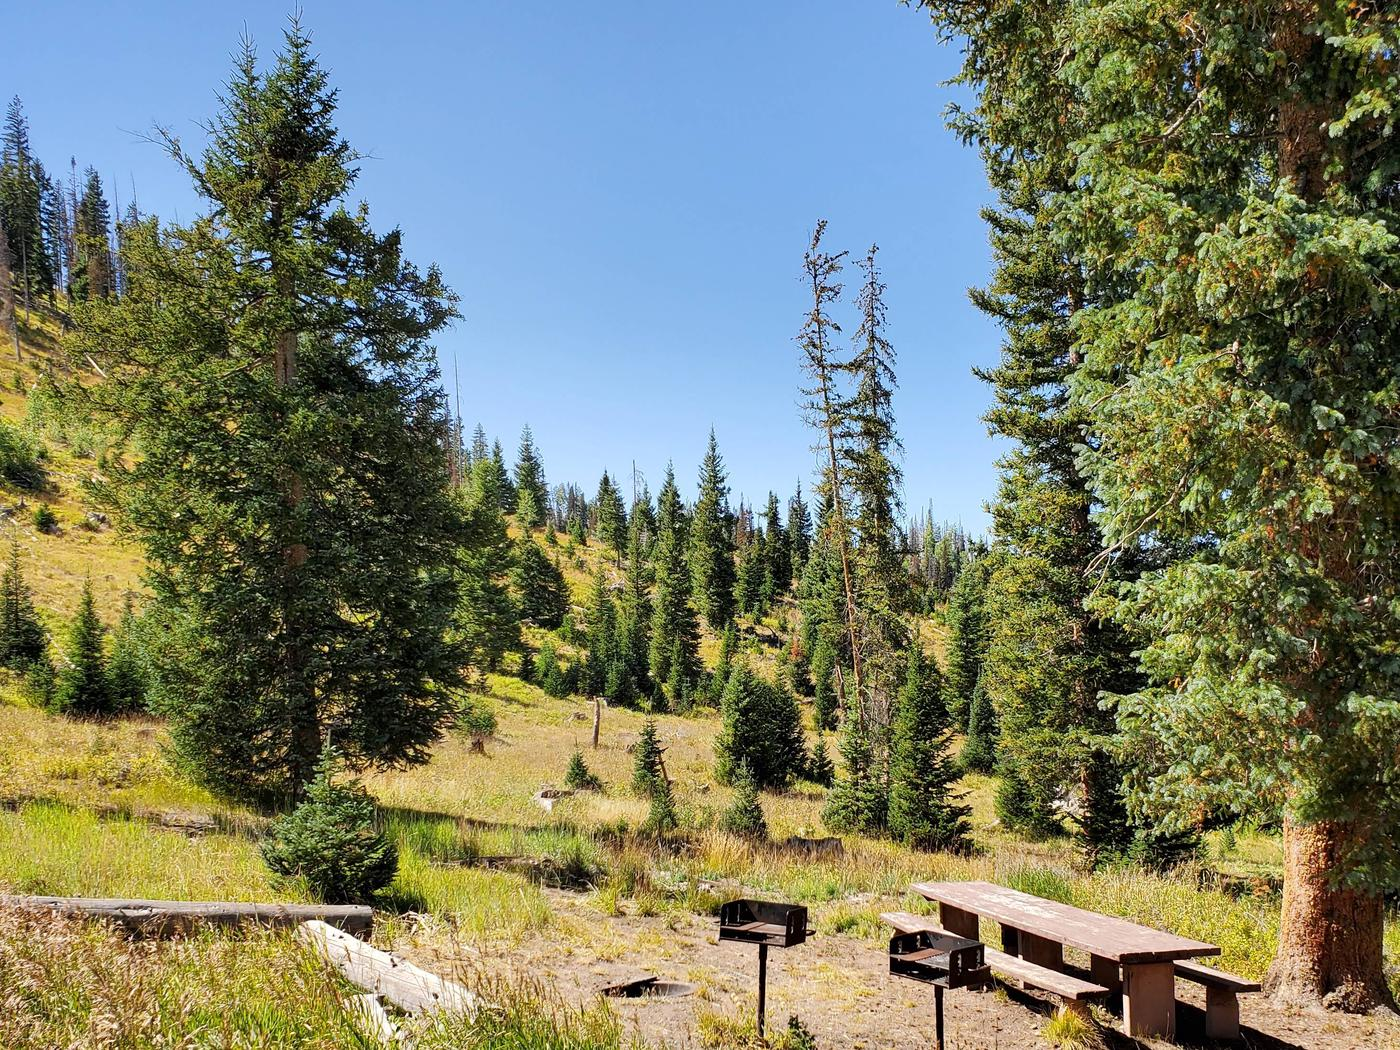 Flat Canyon Campground Site #2